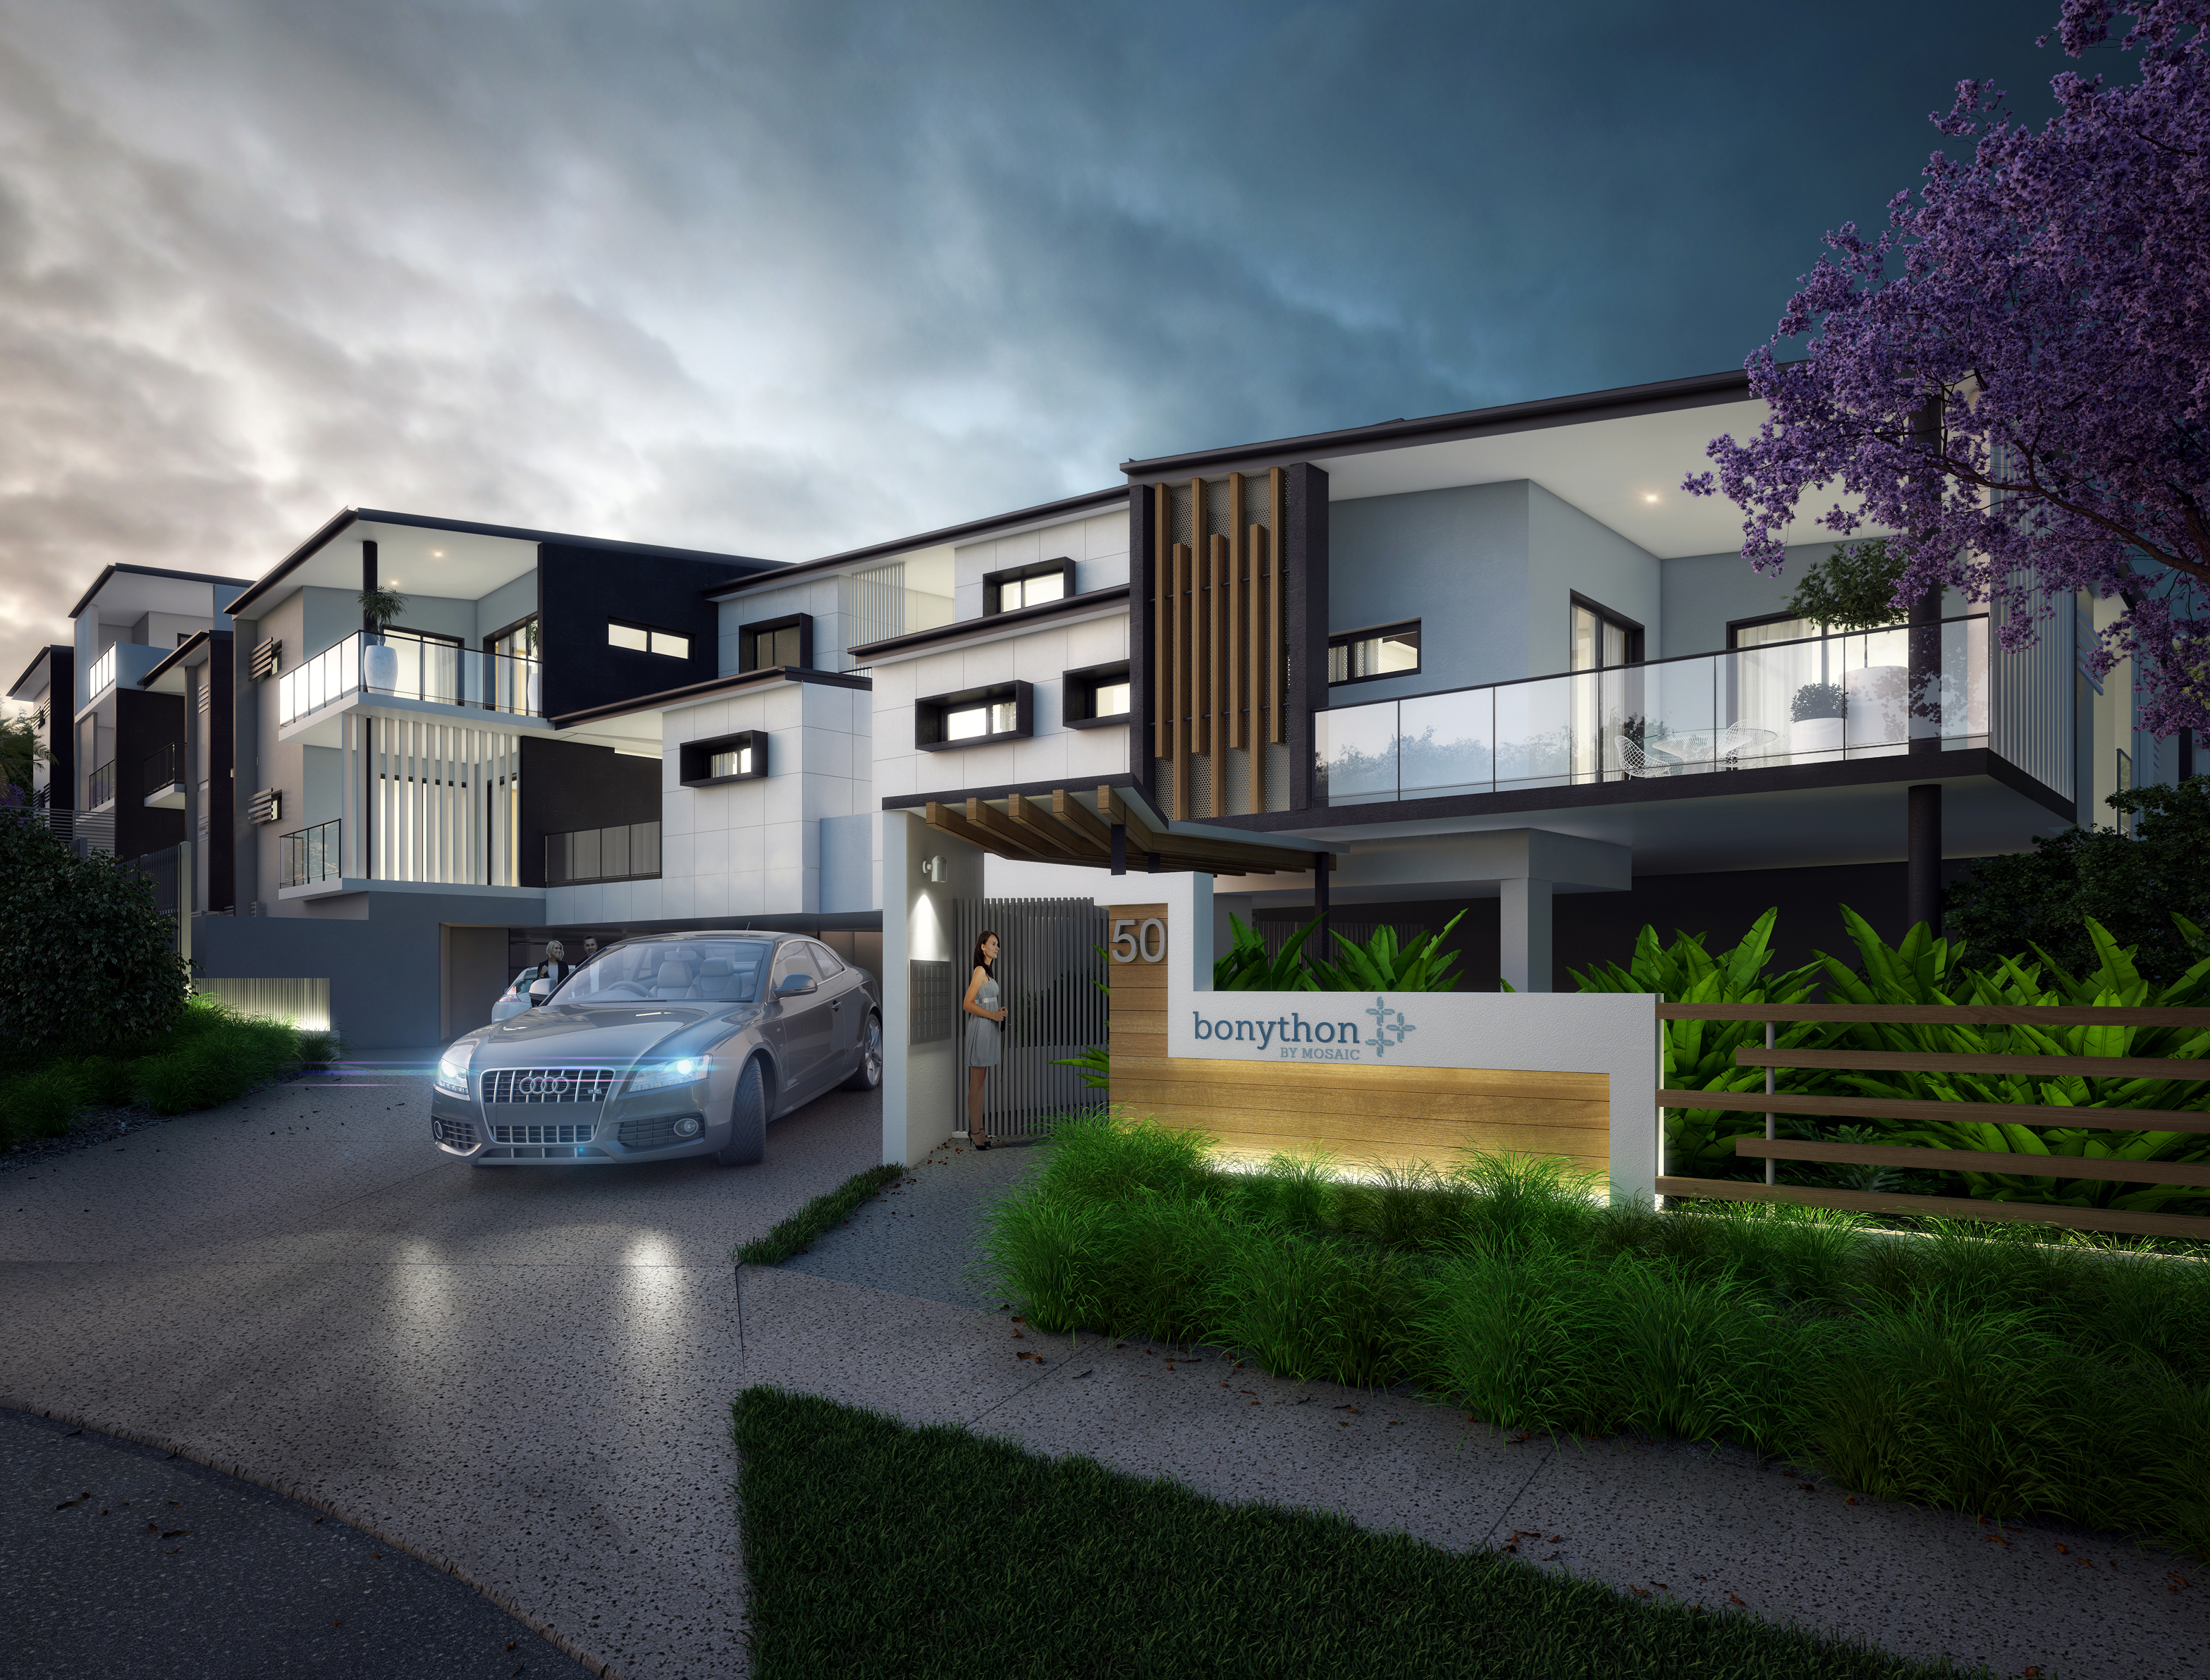 Bonython by Mosaic - Wise Guru - Property Investment in Australia